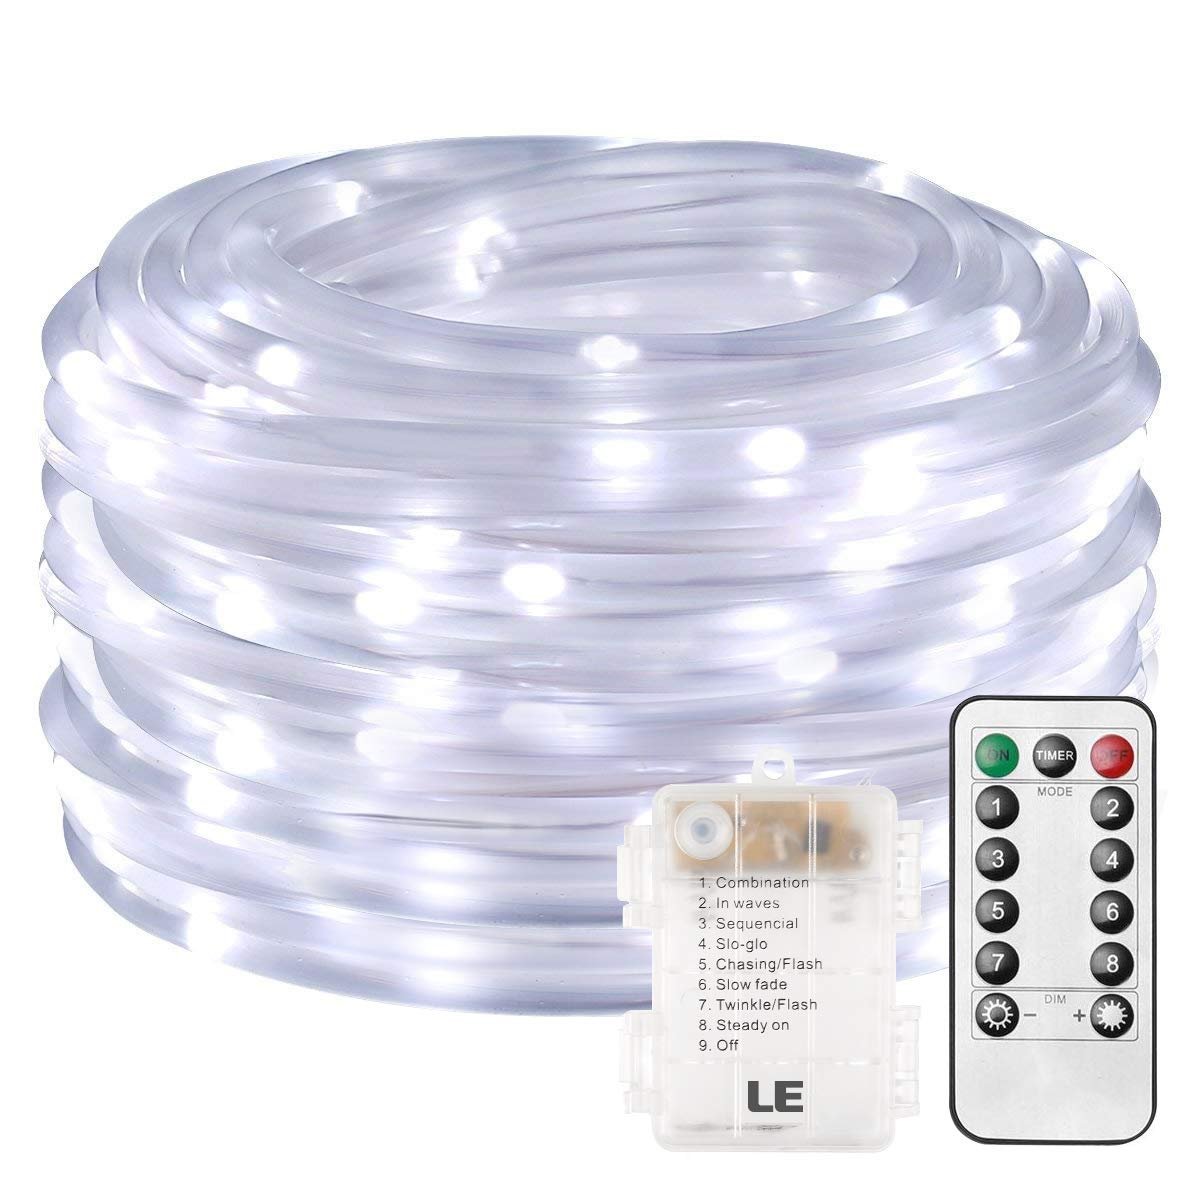 12 Volt Led Rope Light Dimmer Controls Our 2 Wire Round 12v Lights